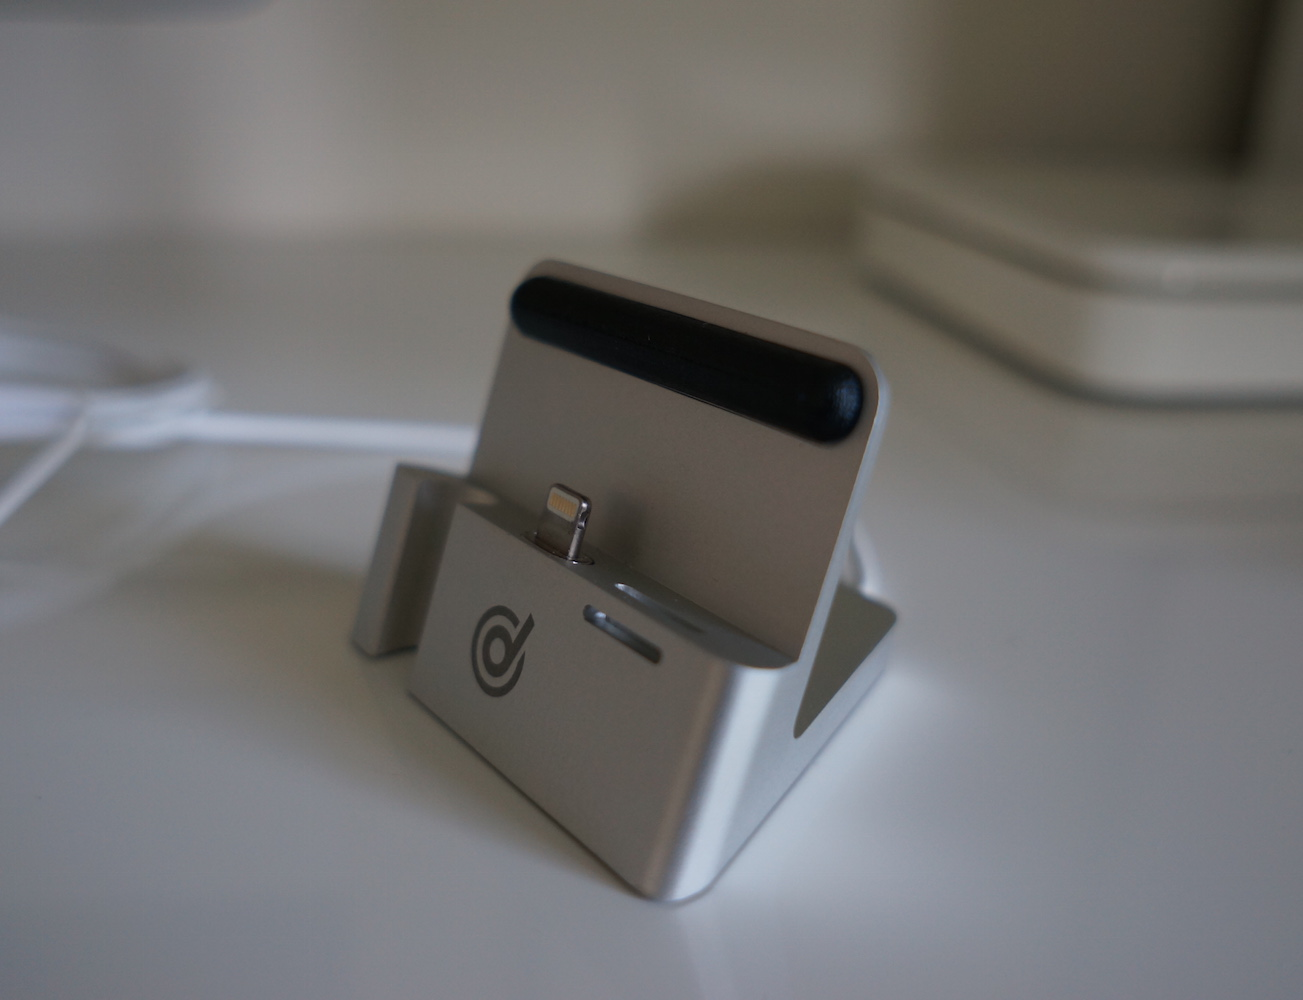 Docks for iPhone